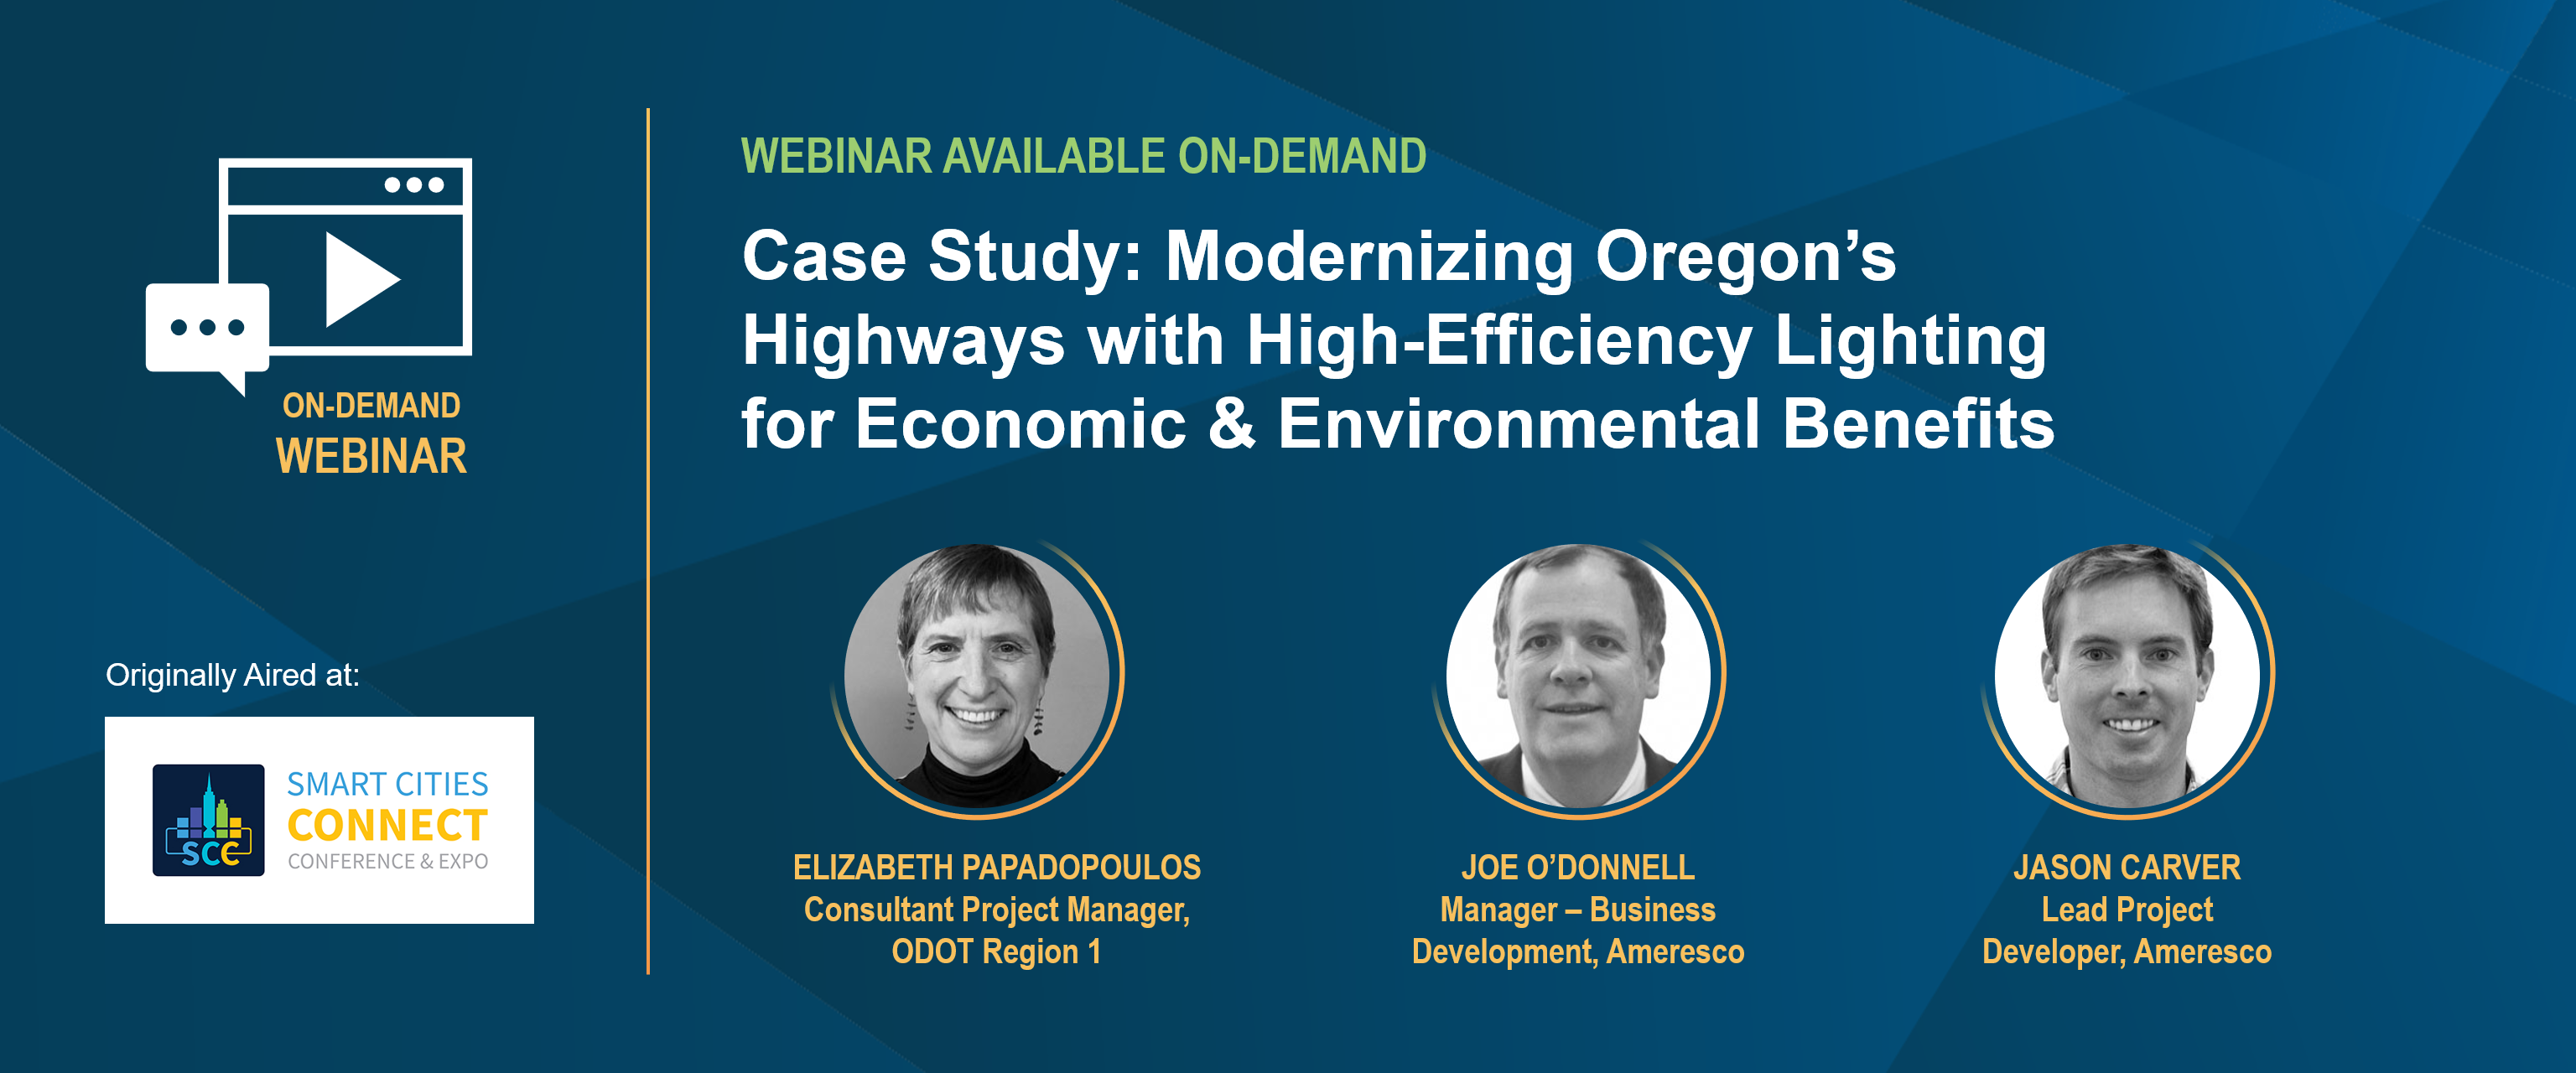 Smart Cities Connect - ODOT - Gated LP-1